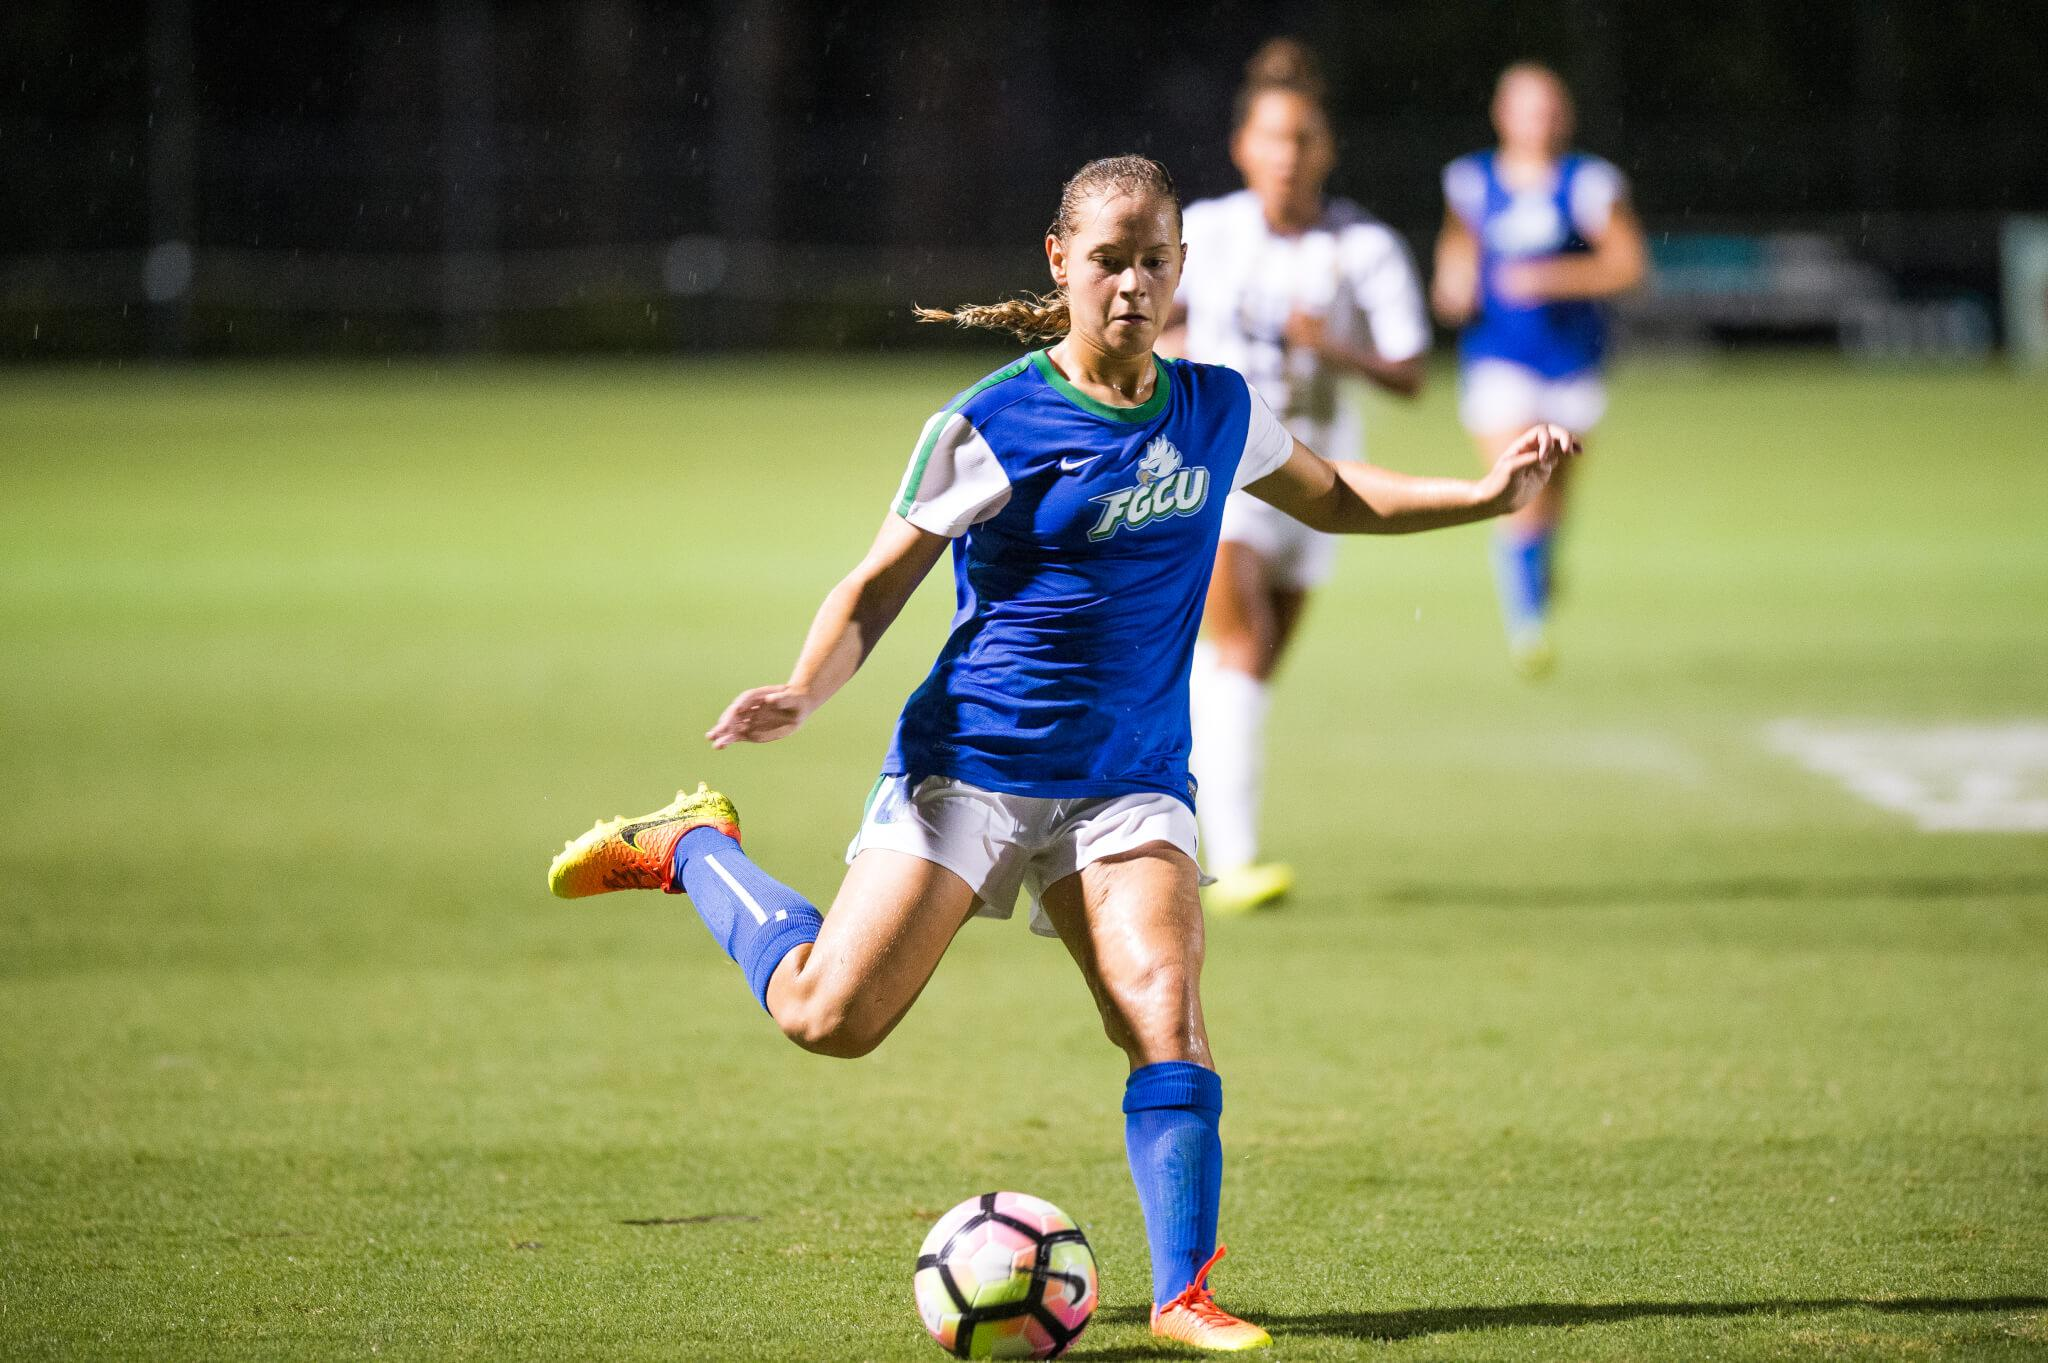 Preview: FGCU women's soccer at ASUN Women's Soccer Championship